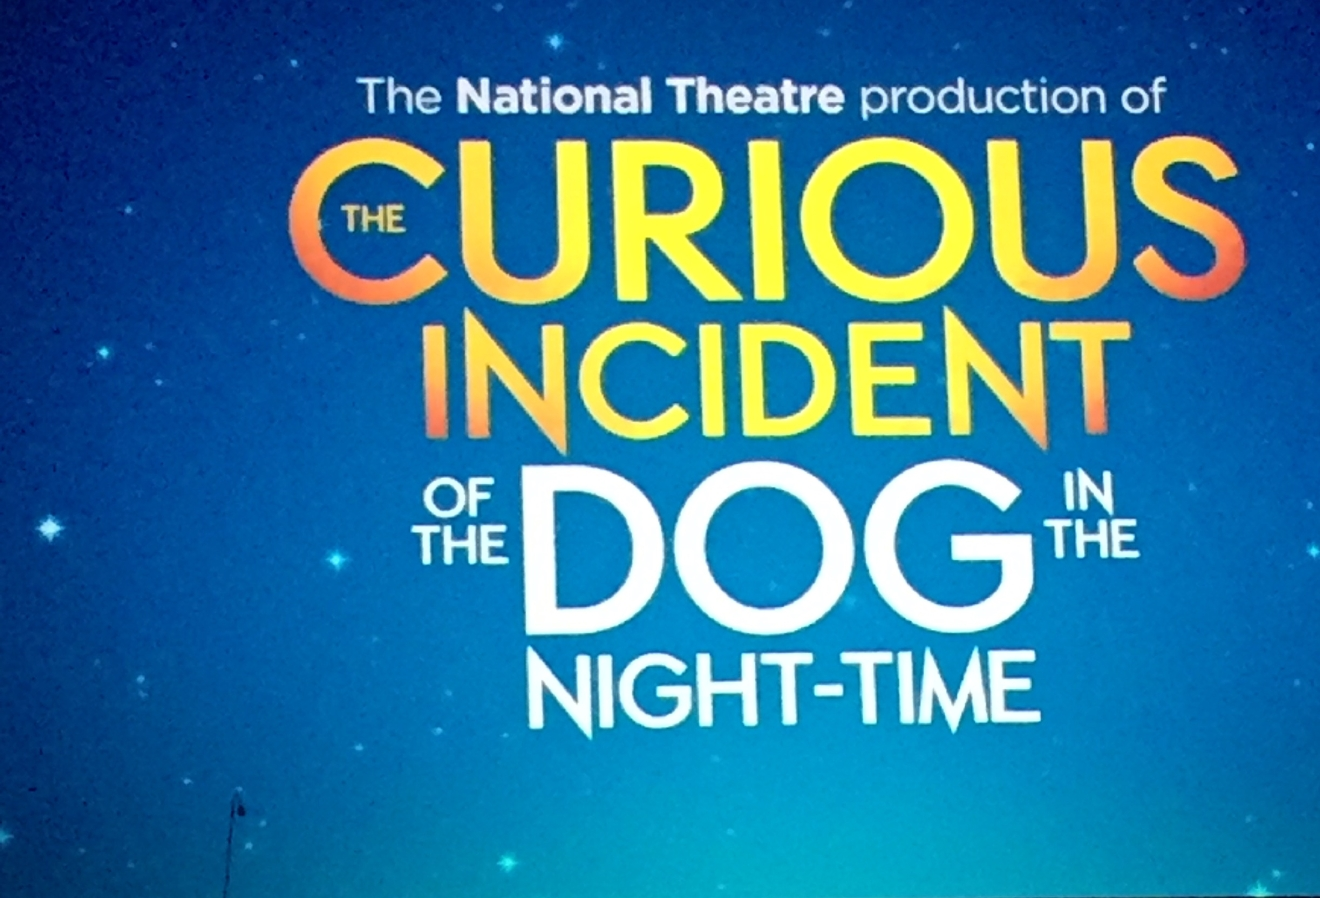 The Curious Incident of the Dog in the Night-Time was revealed as an upcoming tour during the Smith Center for the Performing Arts 2017-2018 Broadway series preview Tuesday, Feb. 28, 2017, in Reynolds Hall. It will run in Las Vegas from Sept. 19-24, 2017 (Jami Seymore | KSNV)